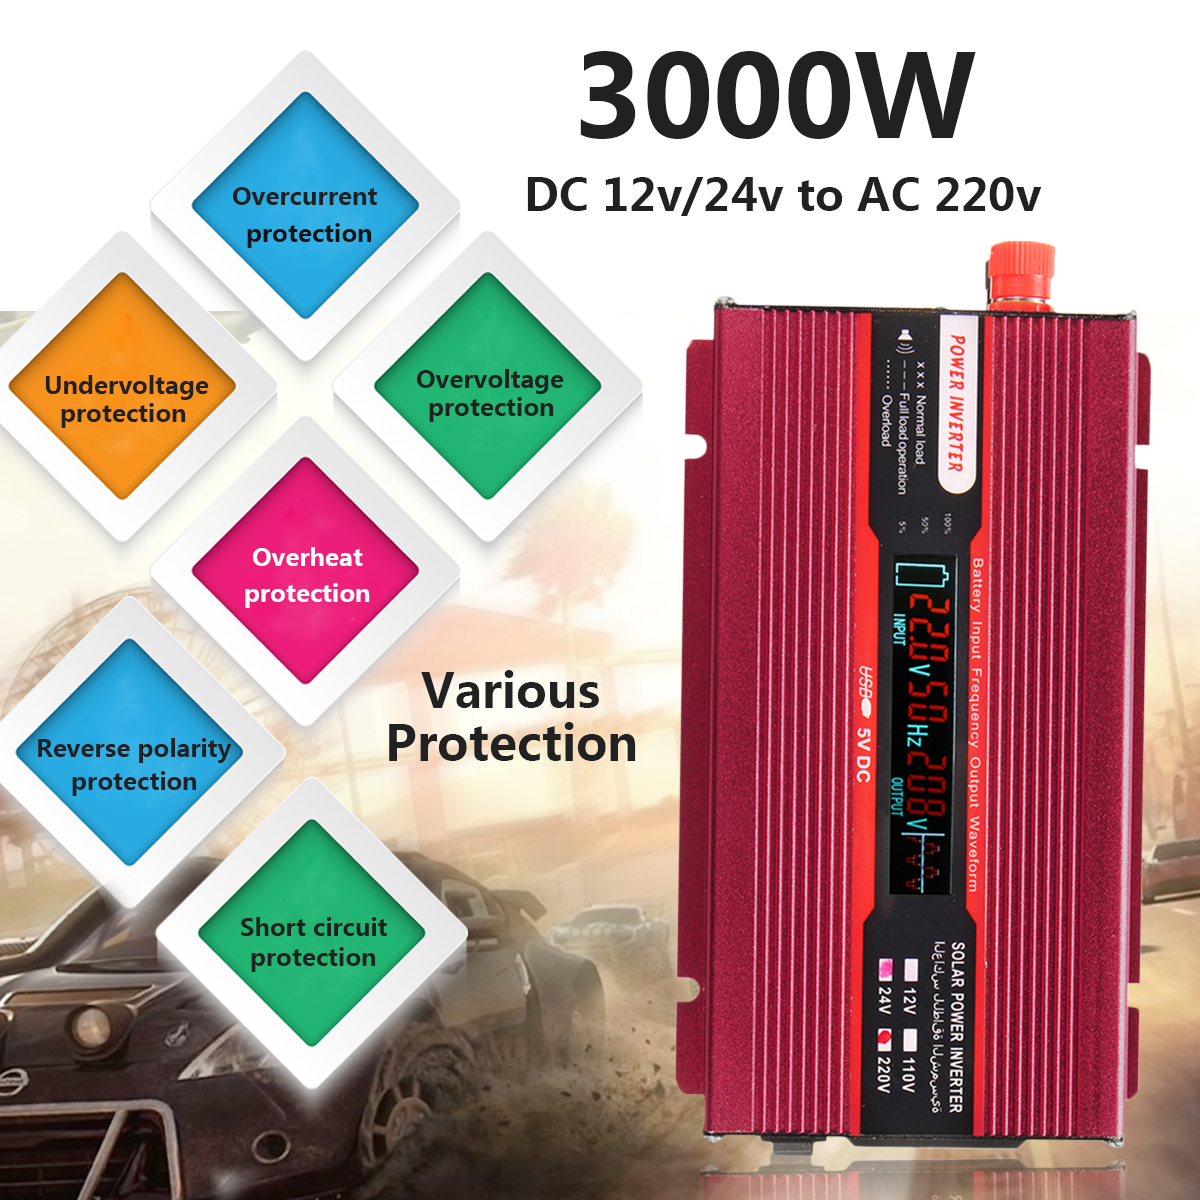 12/24V To AC 220/110V Sine Wave Converter Car Power Inverter PEAK 3000W USB Modified Low Noise Multiple Voltage Transformer 12 24v to ac 220 110v car power inverter converter peak 10000w usb modified sine wave voltage transformer universal intelligent